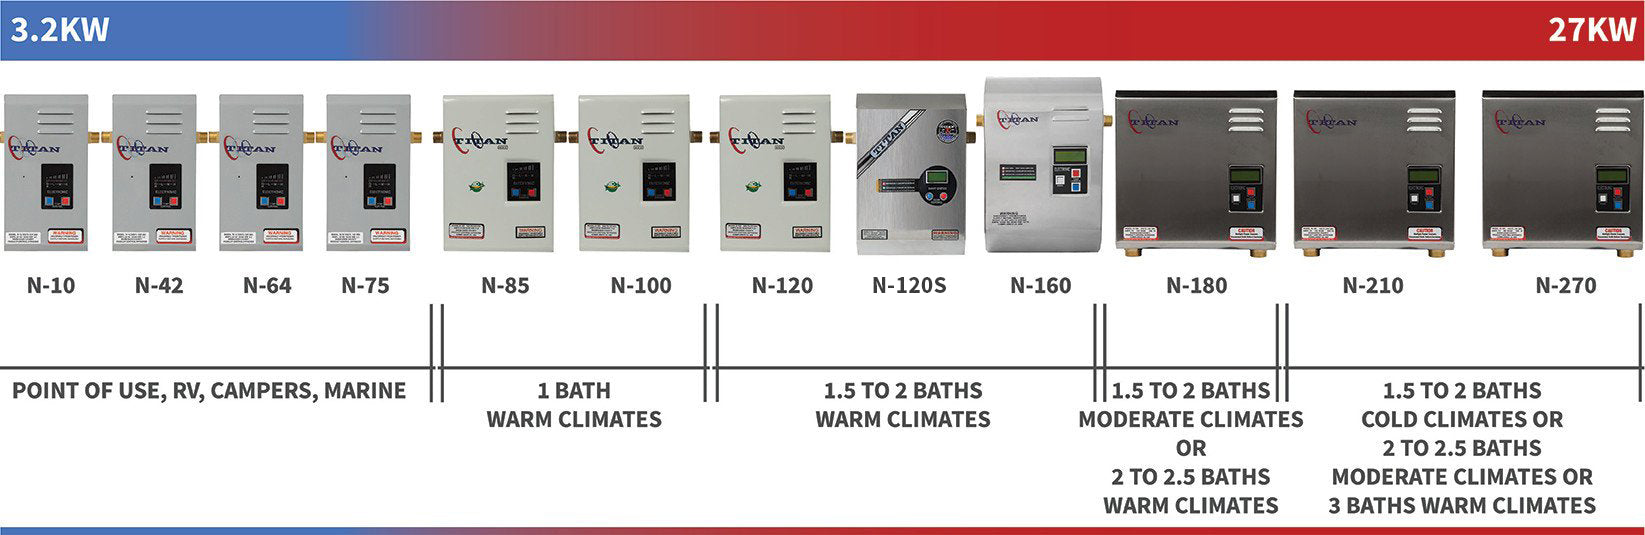 Titan tankless water heater size guide displaying heaters from smallest to biggest.